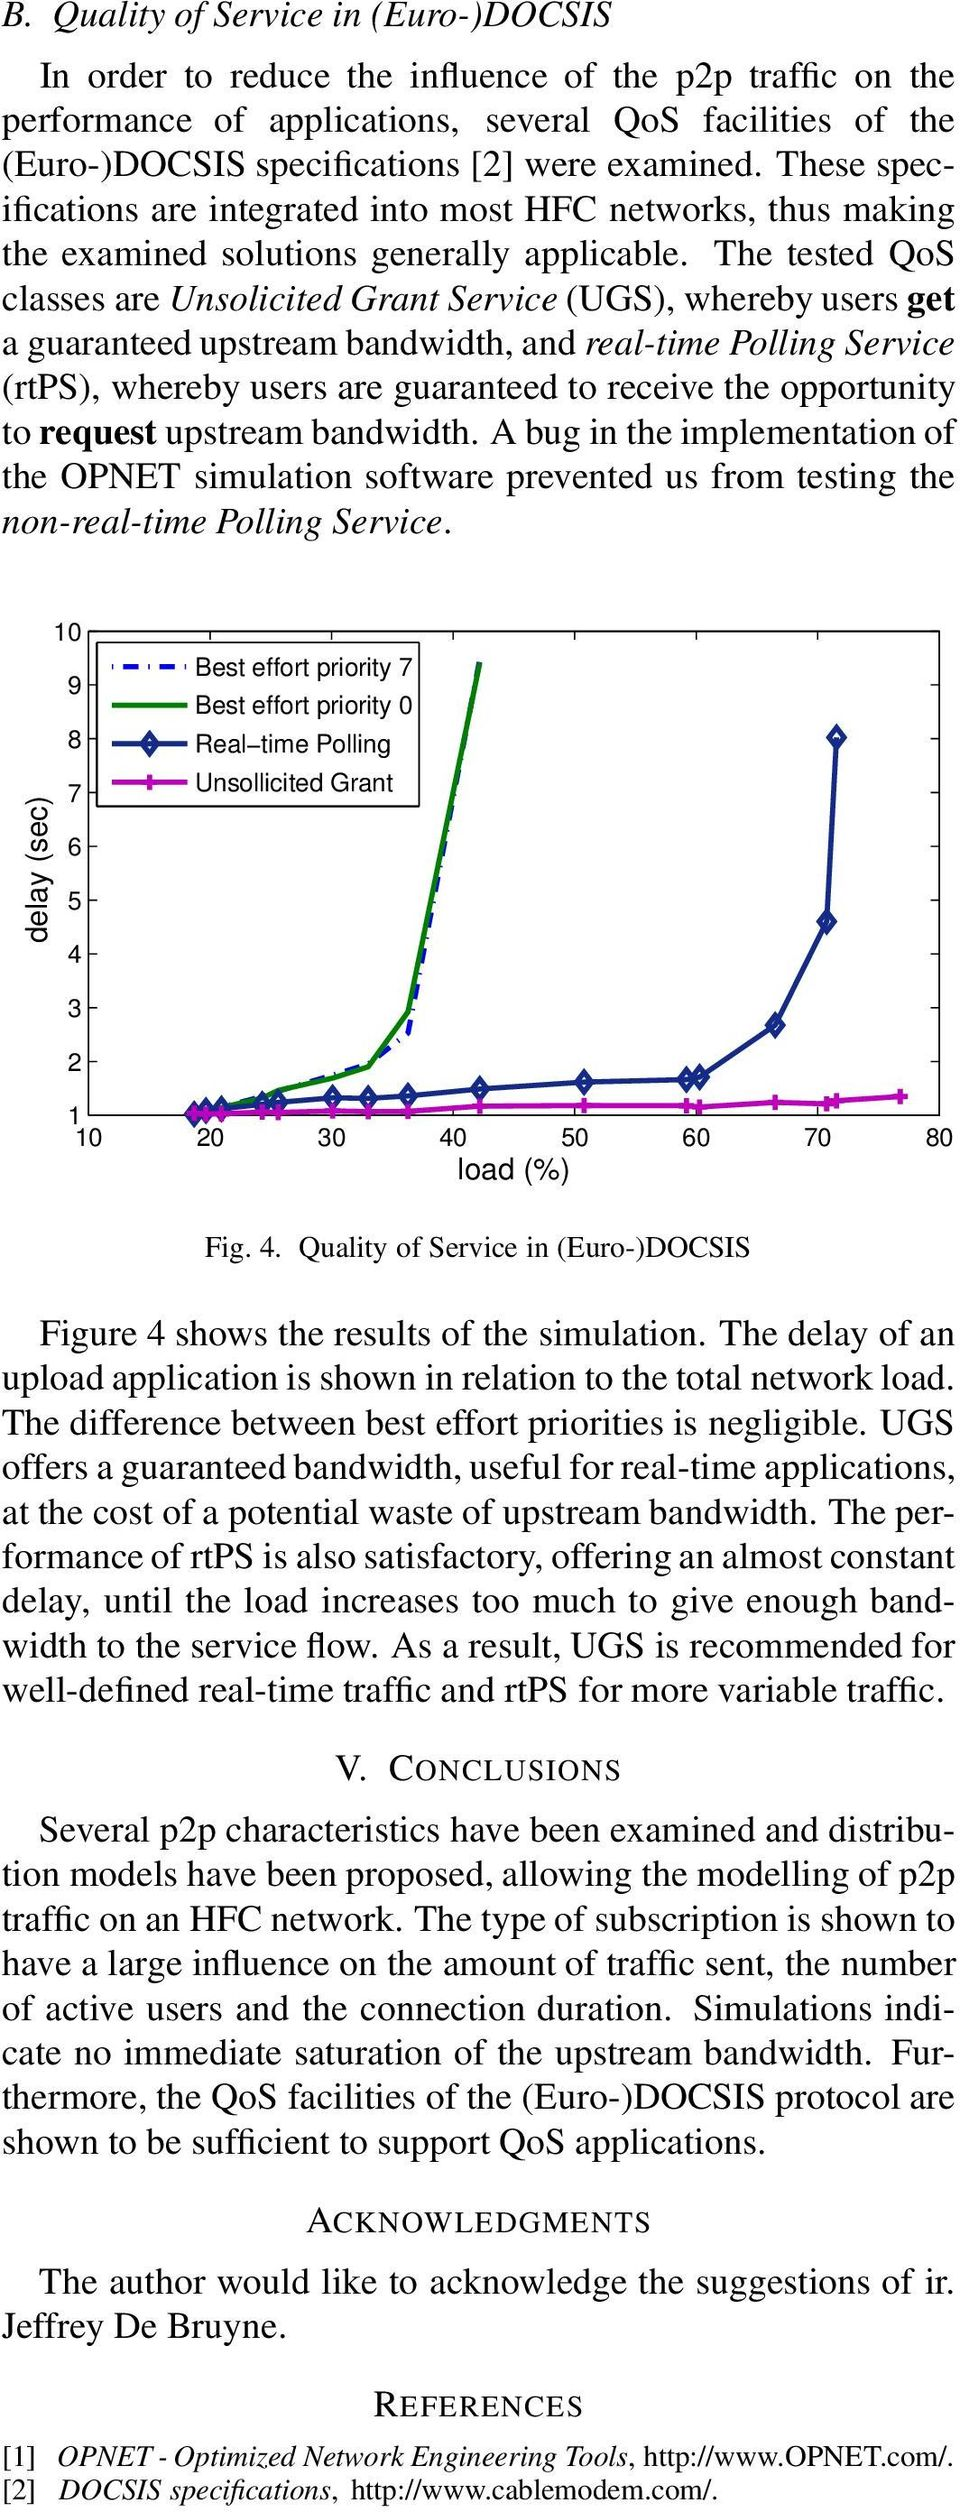 The tested QoS classes are Unsolicited Grant Service (UGS), whereby users get a guaranteed upstream bandwidth, and real-time Polling Service (rtps), whereby users are guaranteed to receive the